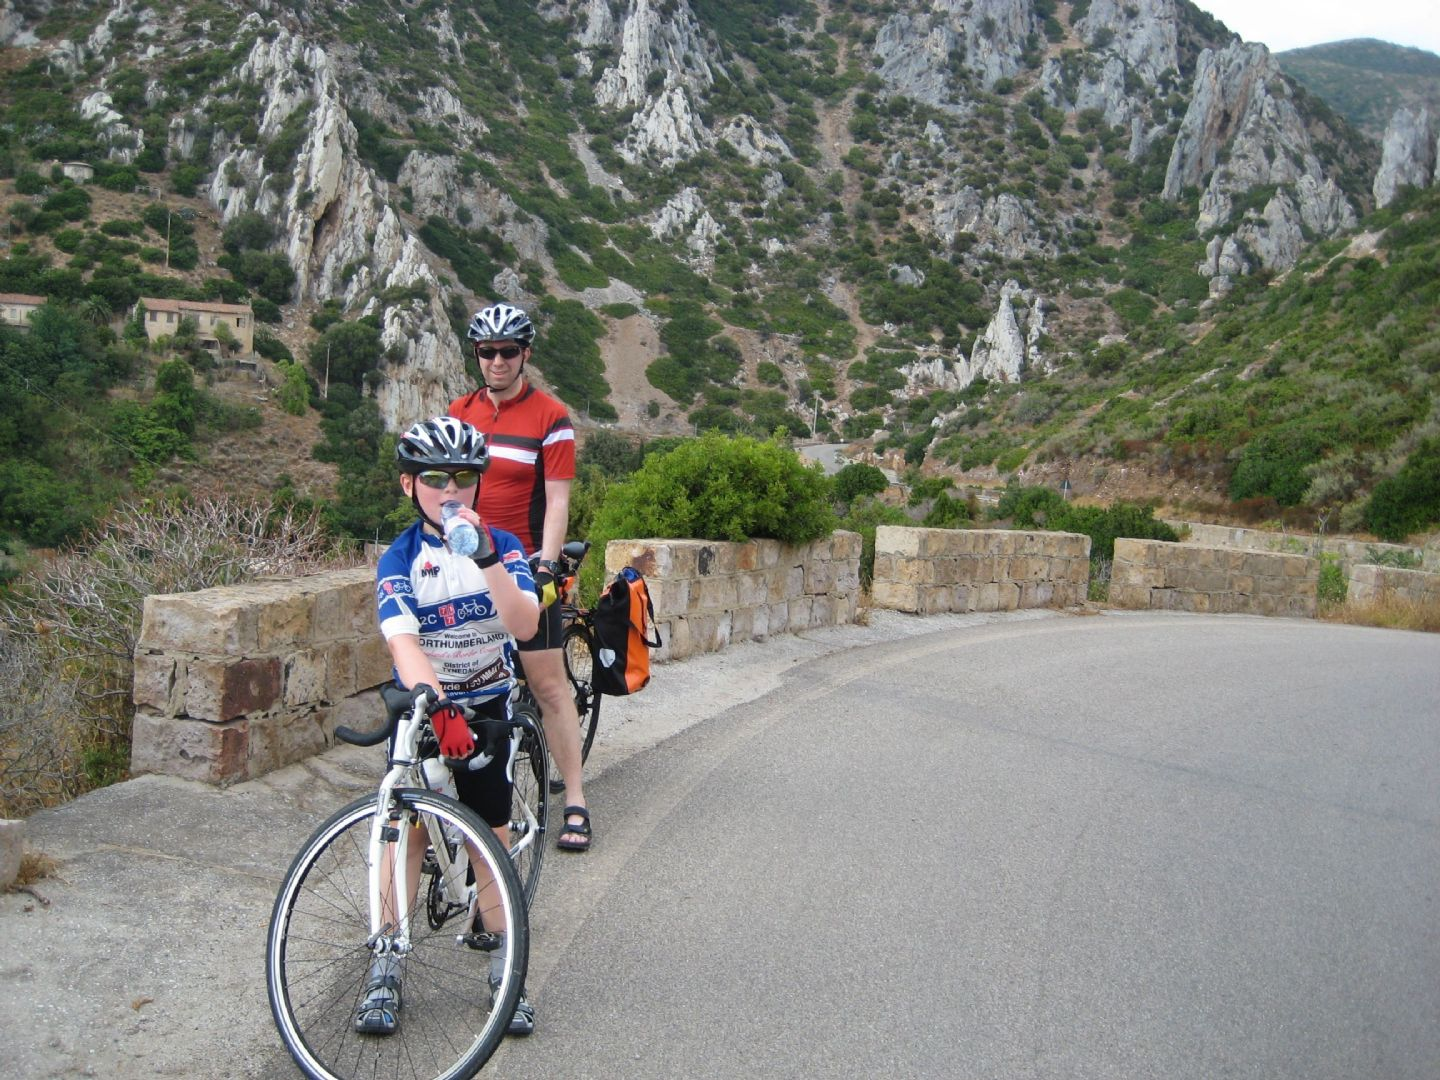 _Customer.81566.13579.jpg - Italy - Sardinia - Coasts and Islands - Self-Guided Family Cycling Holiday - Family Cycling